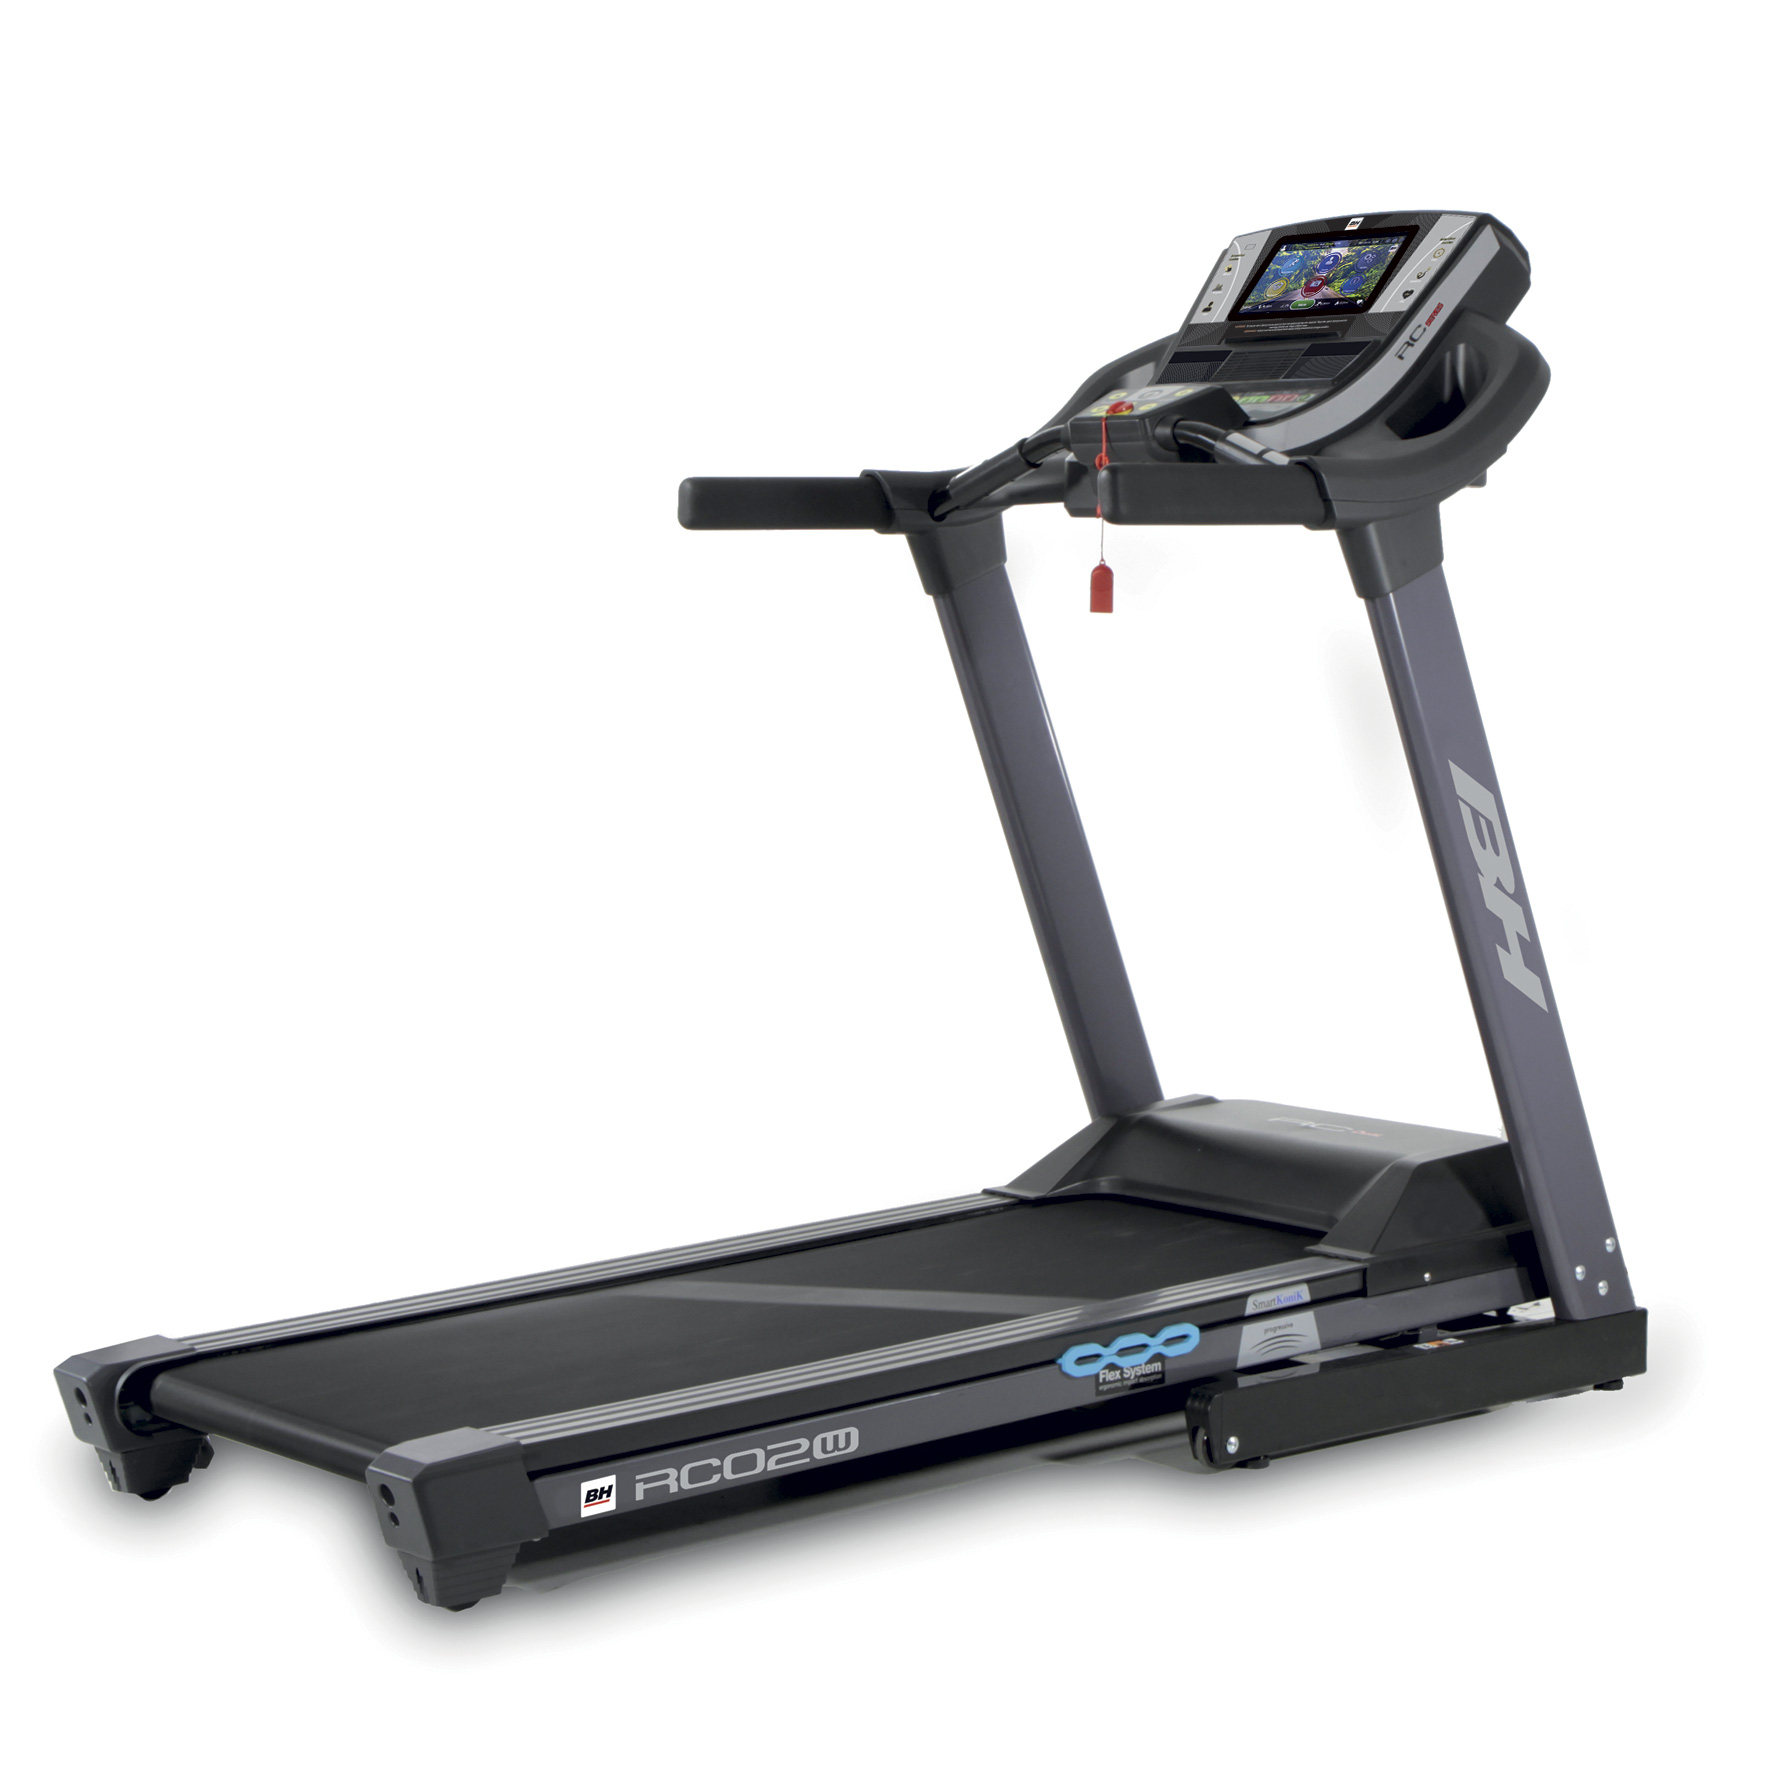 Bh fitness RC02W TFT